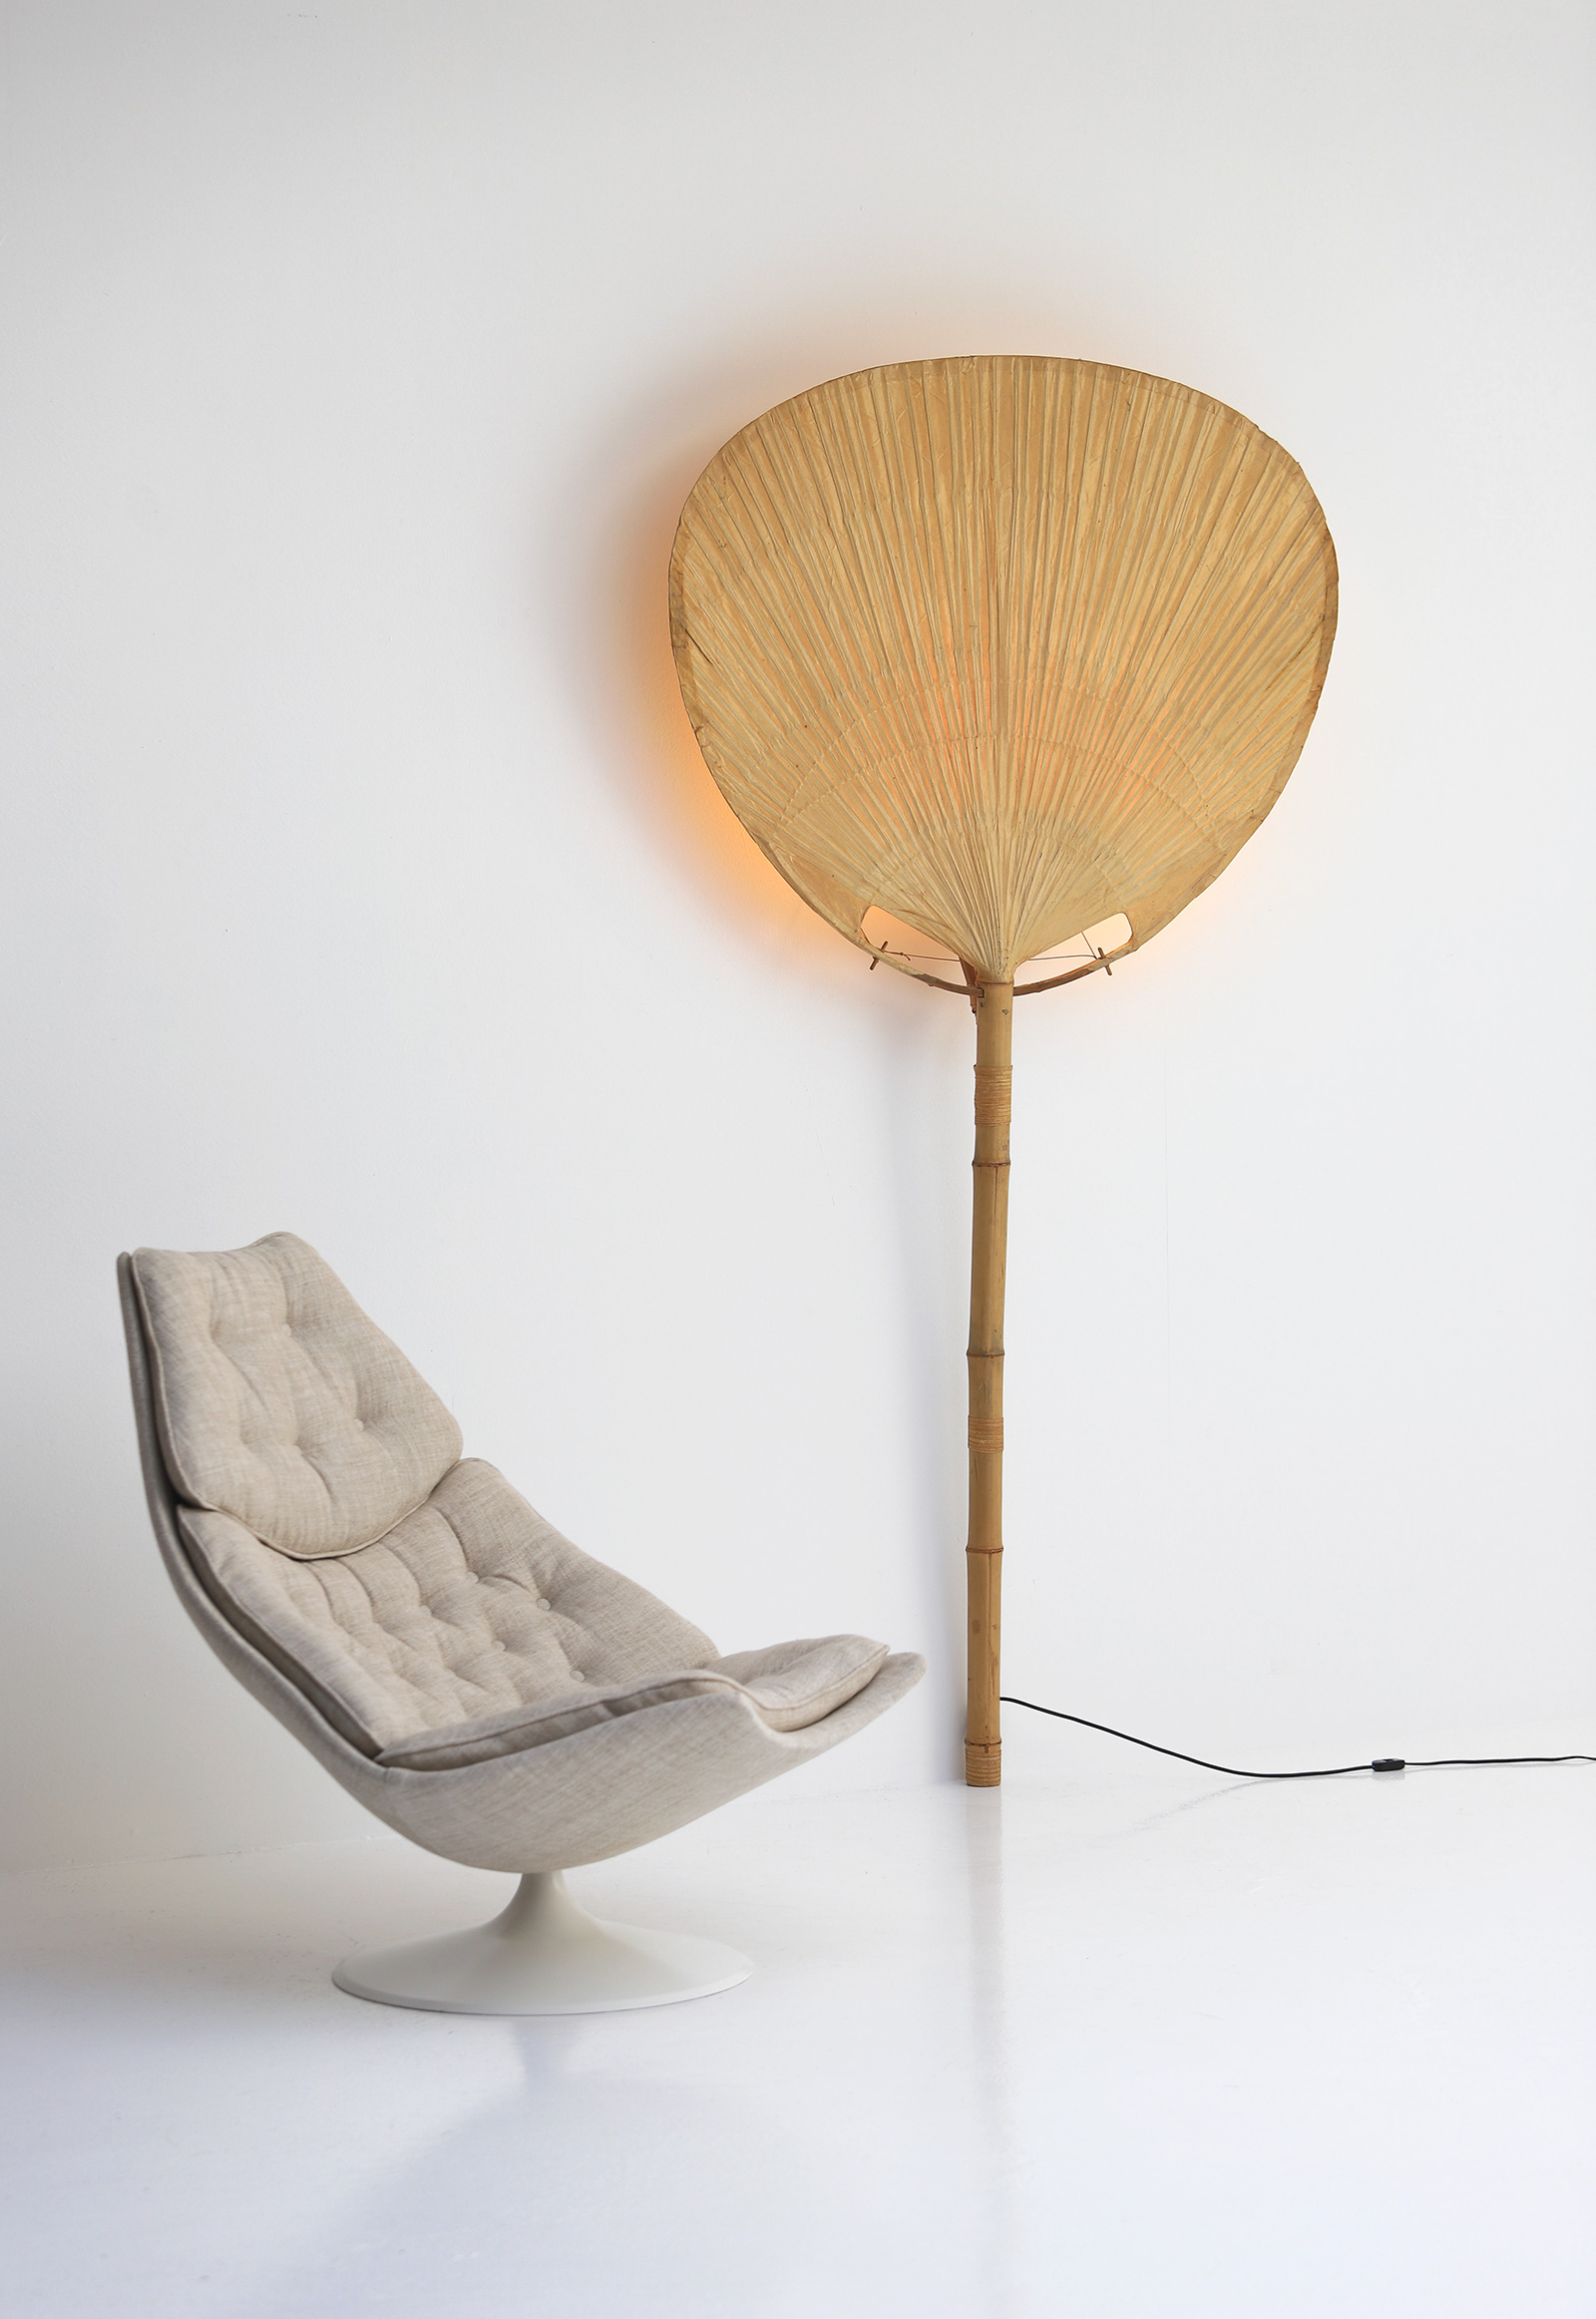 Large Uchiwa Floor Lamp by Ingo Maurer, 1977